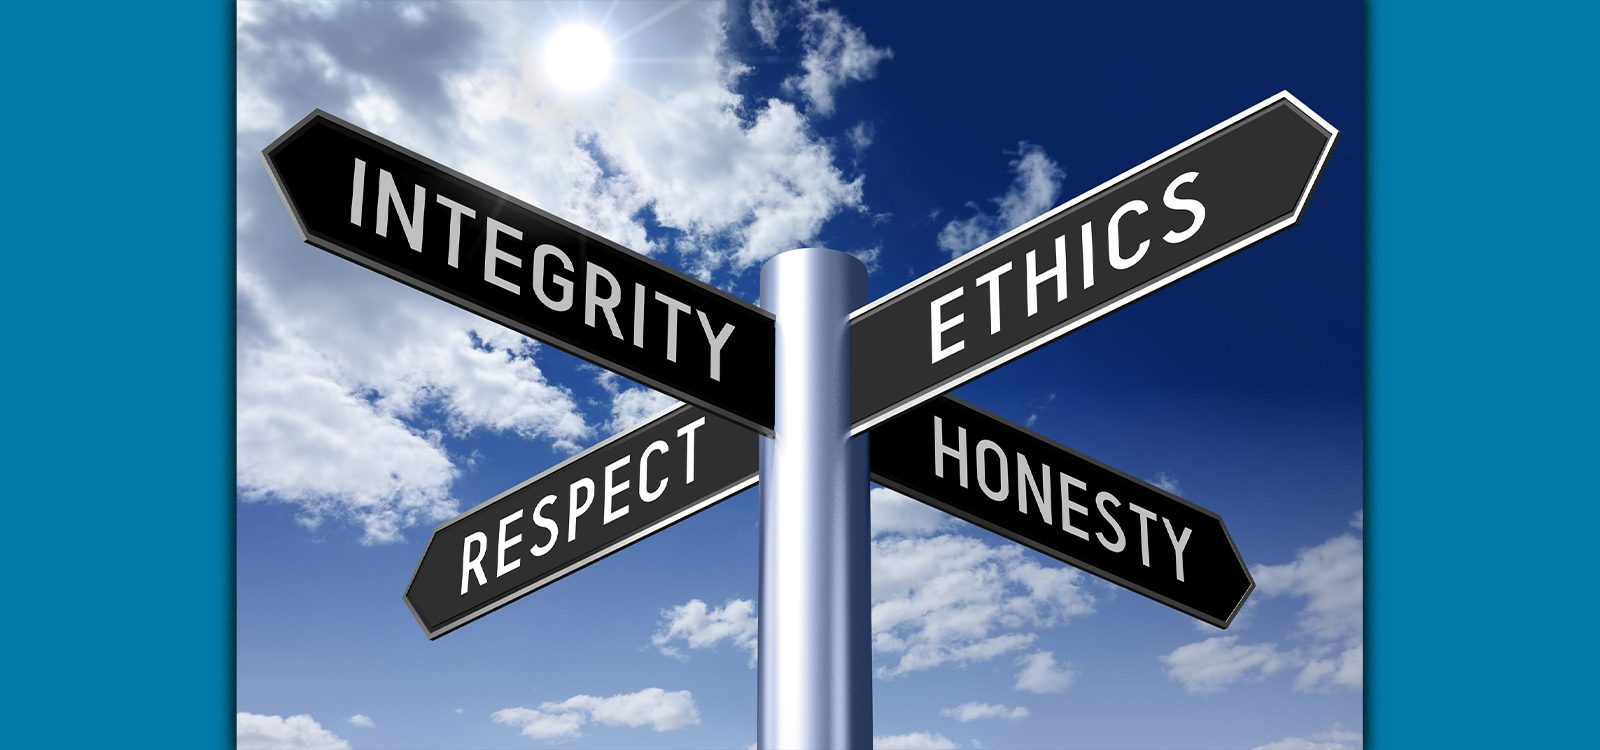 Flexing your ethical muscles